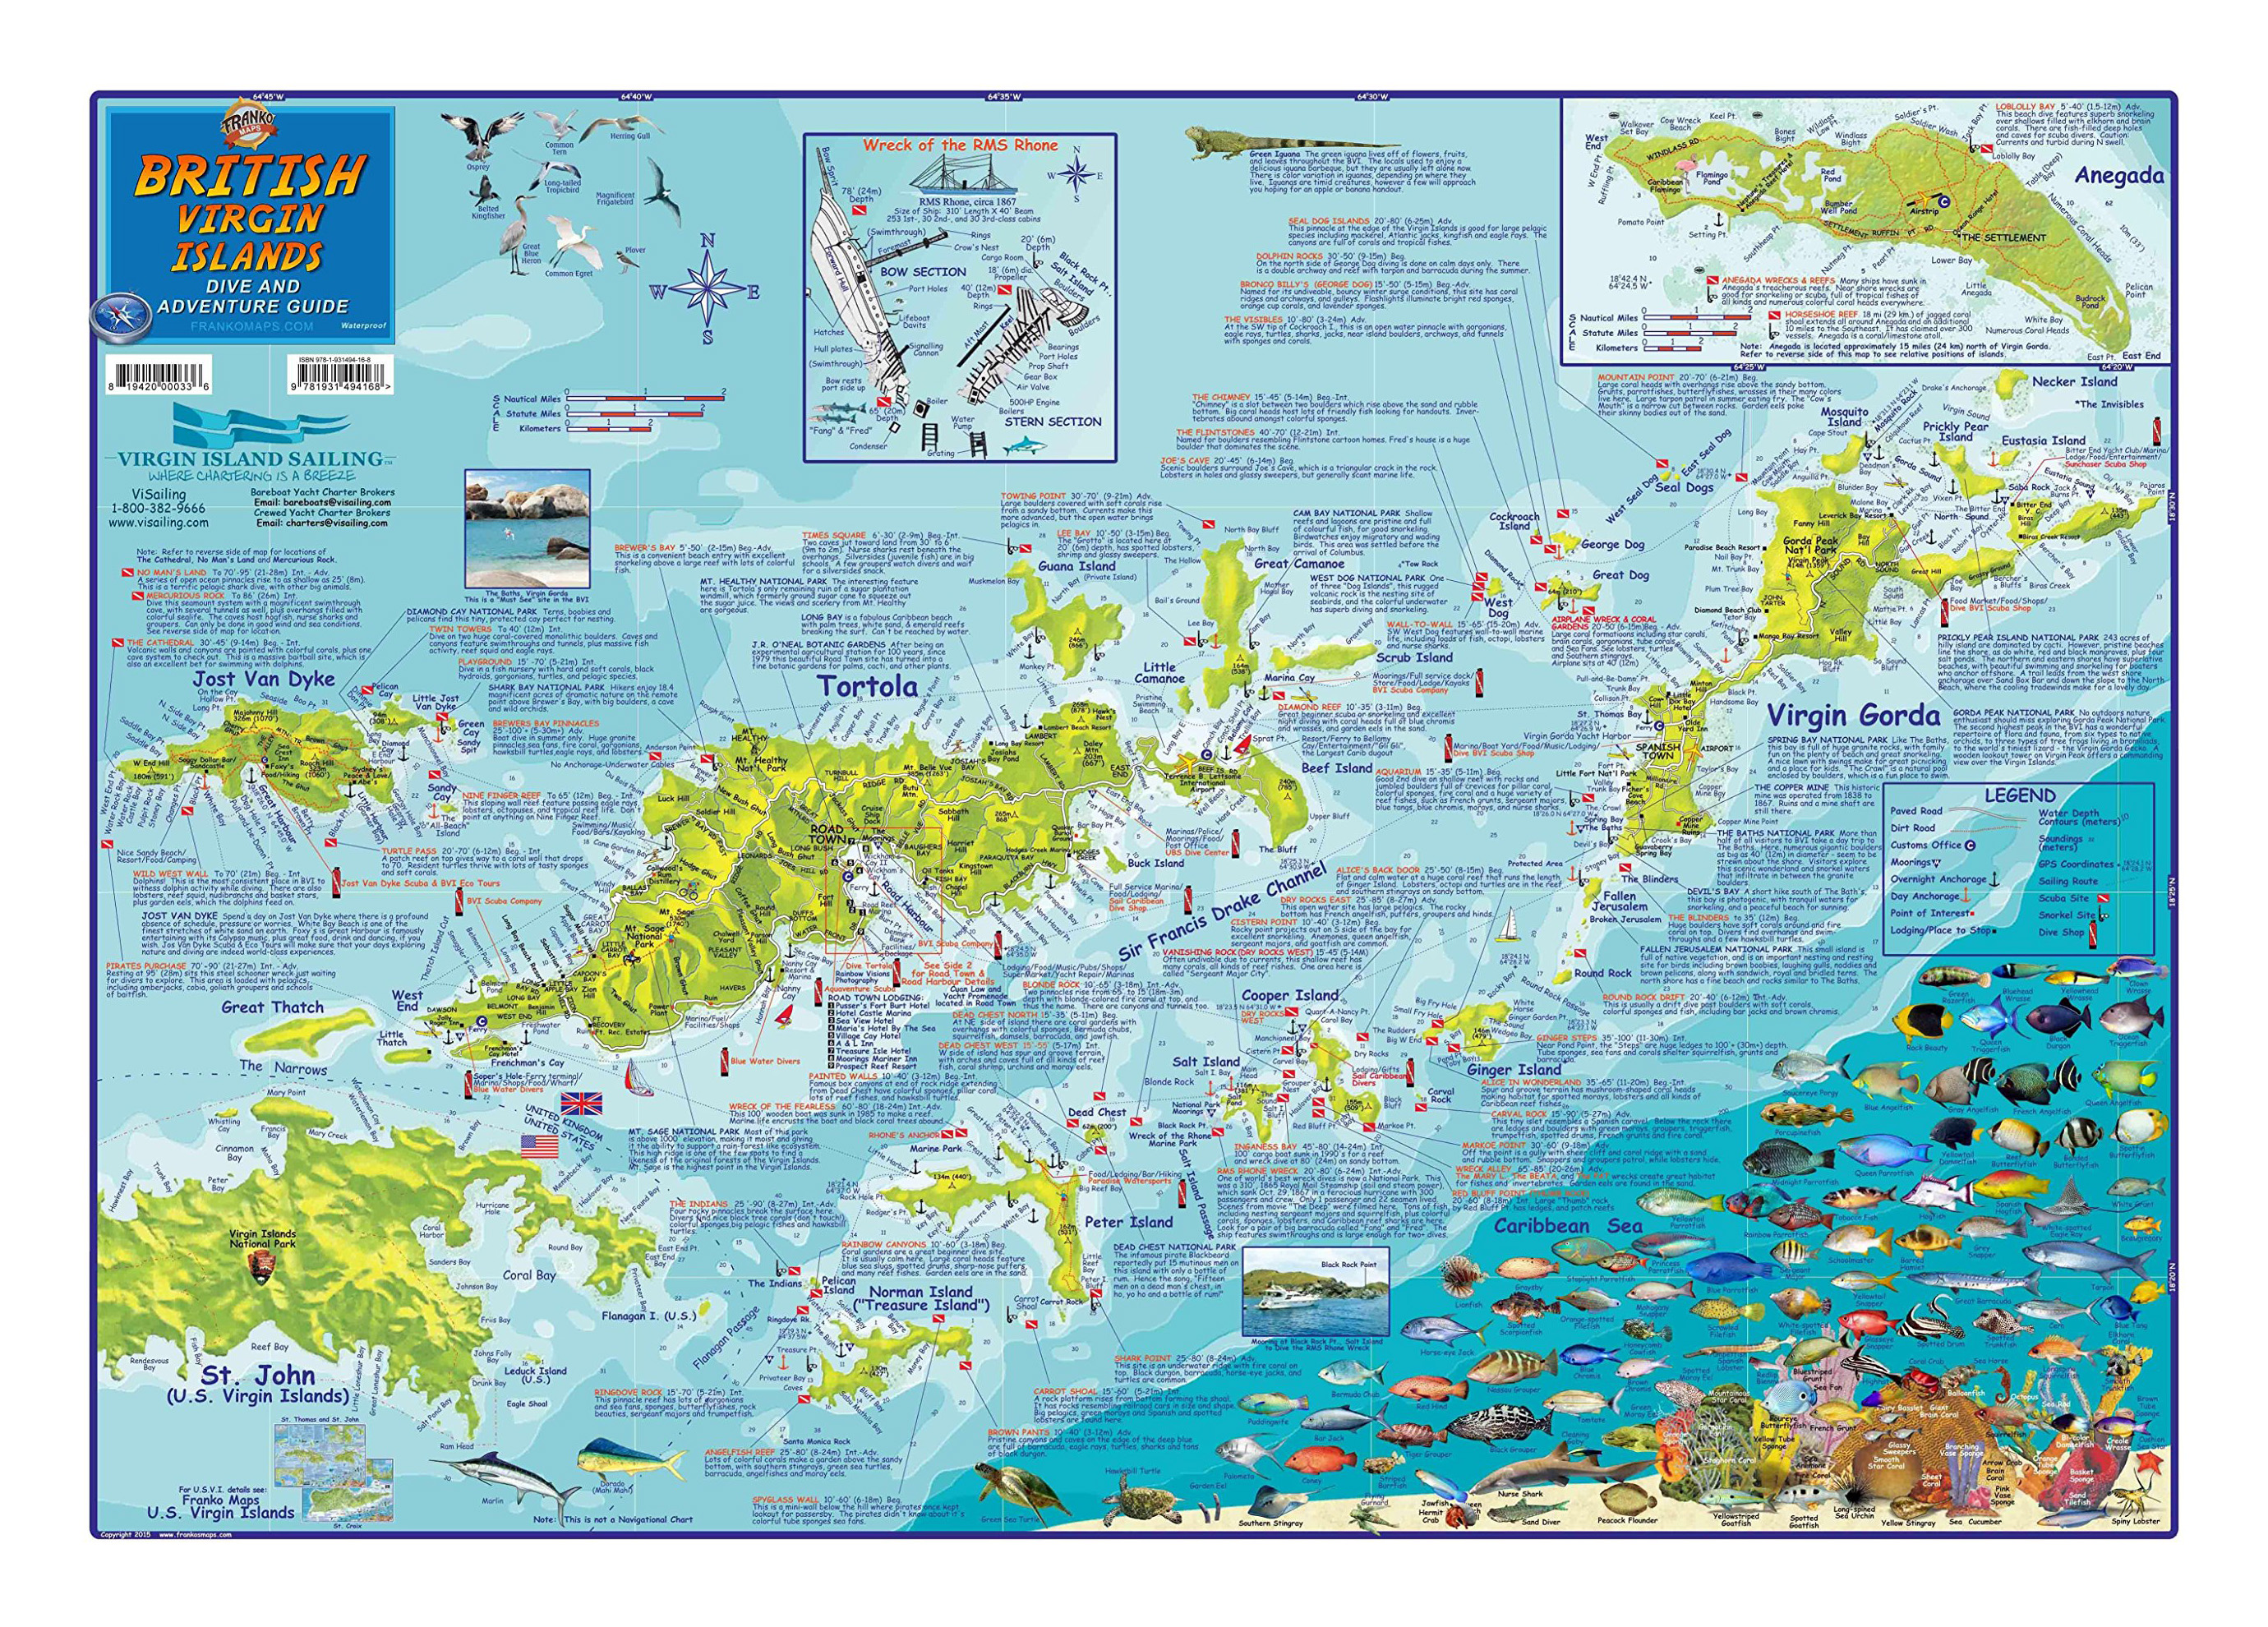 large dive and adventure guide map of british virgin islands